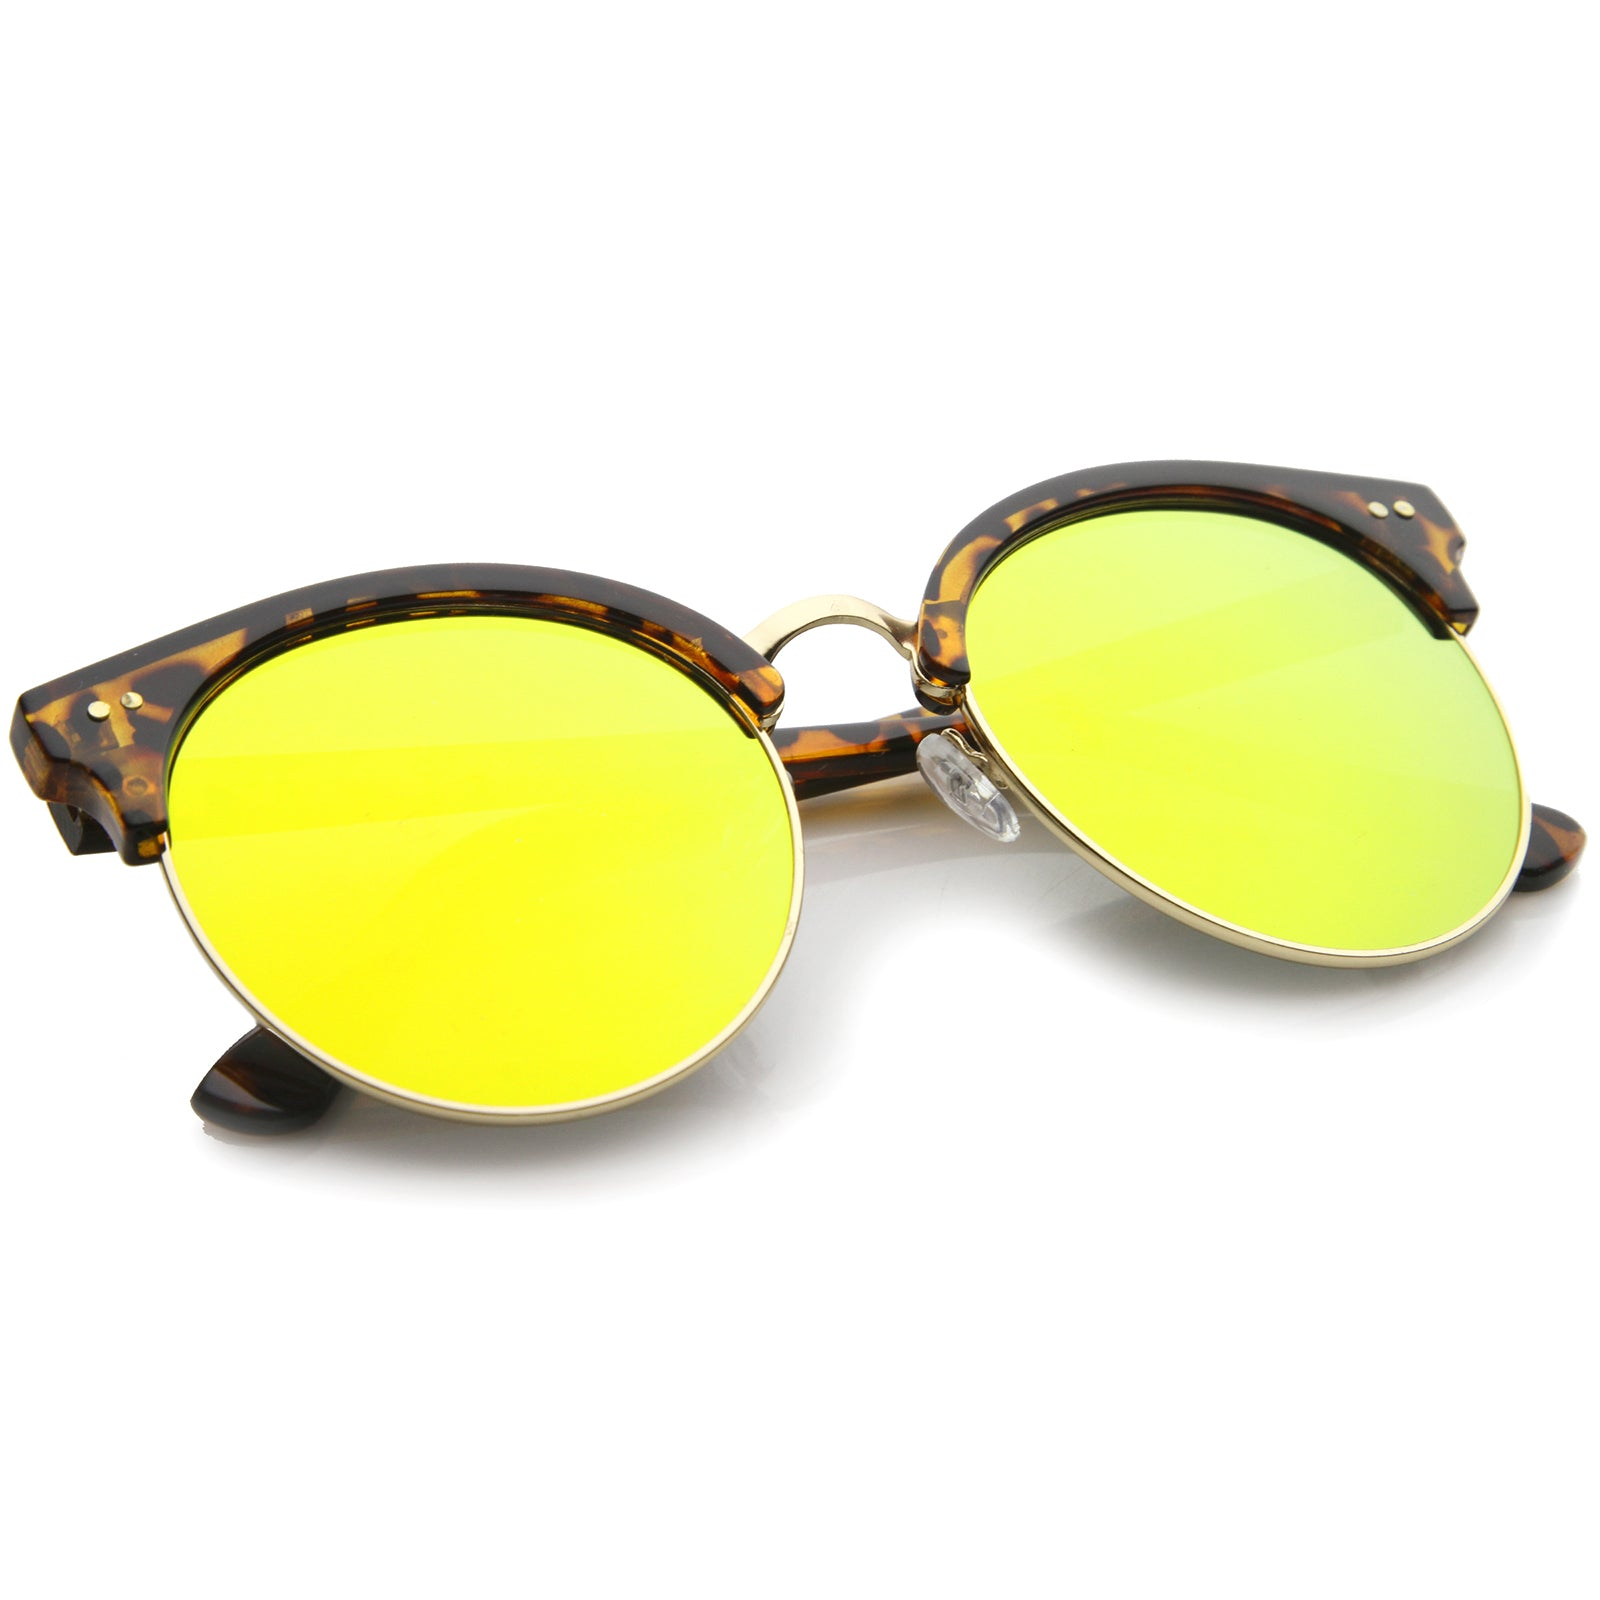 Womens Oversized Sunglasses With UV400 Protected Mirrored Lens - sunglass.la - 4